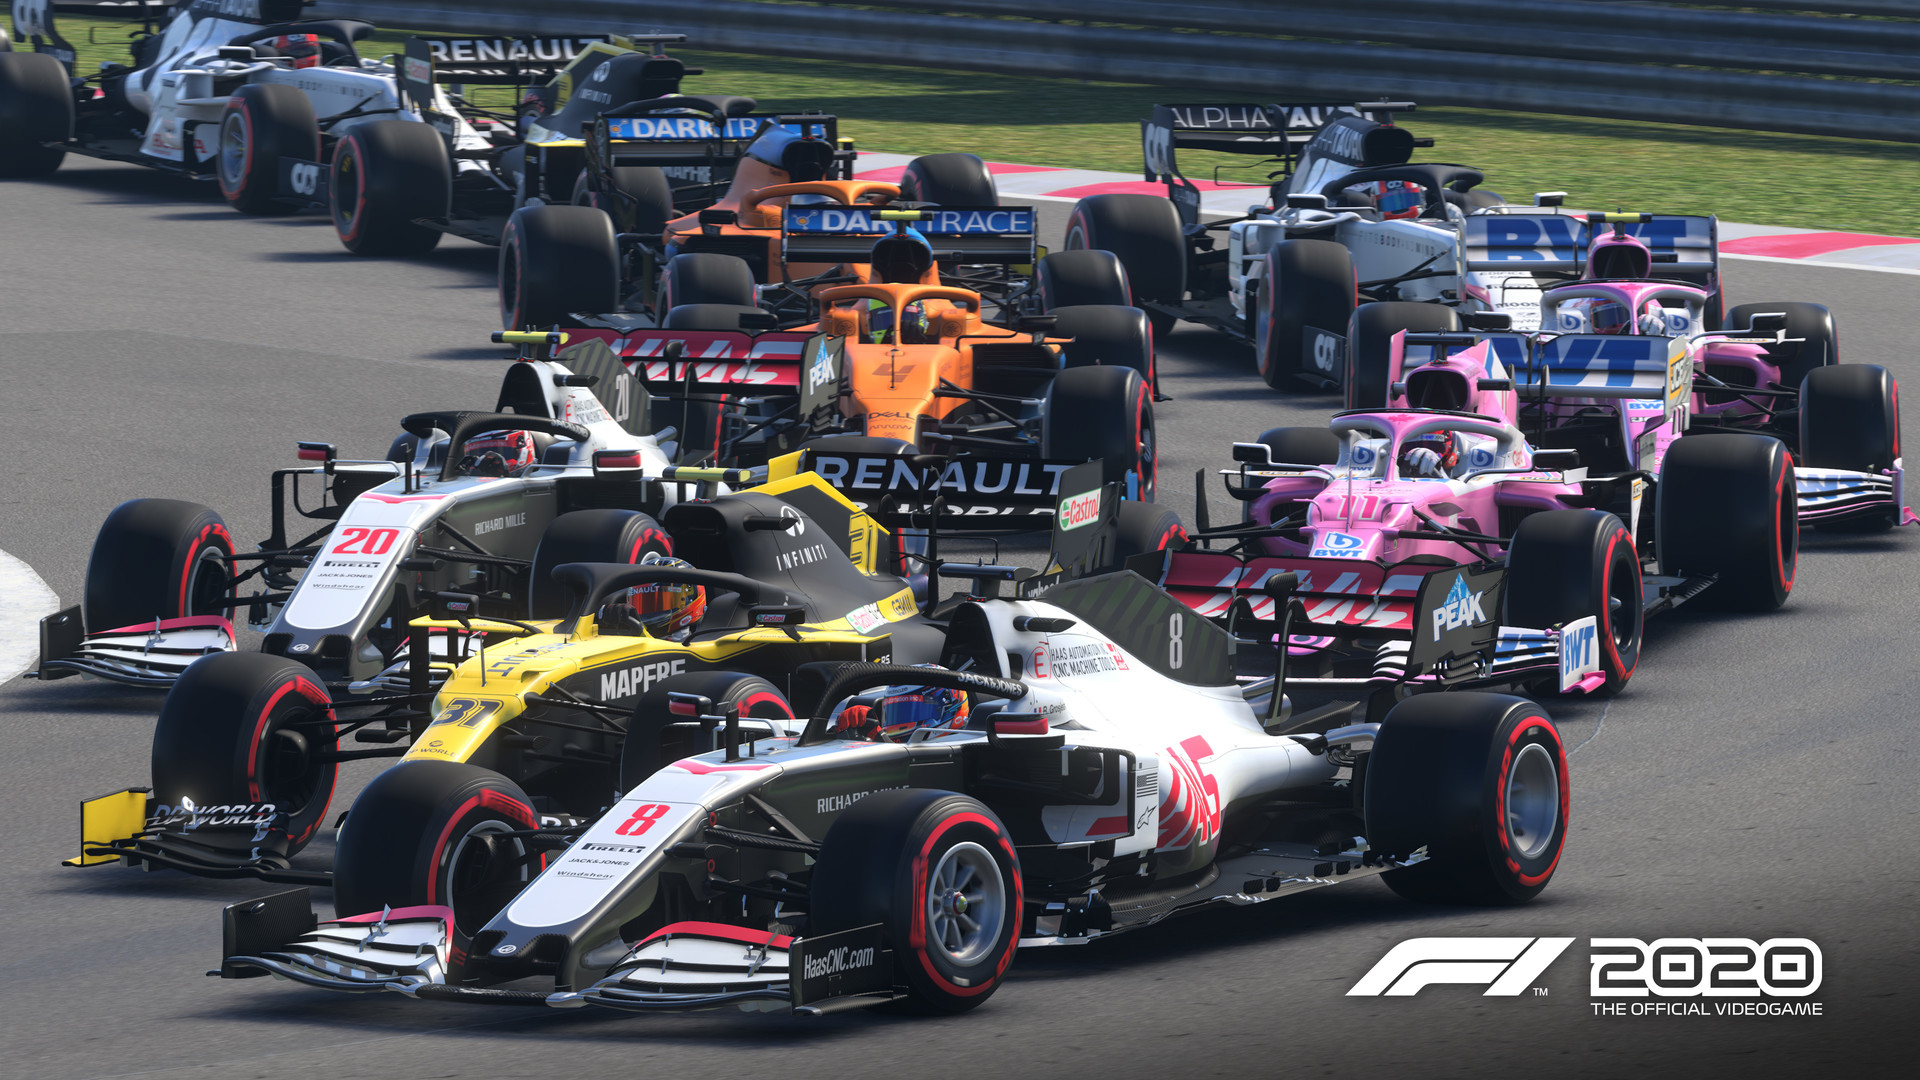 F1 2020 SEVENTY EDITION. STEAM-key+GIFT (RU+CIS)